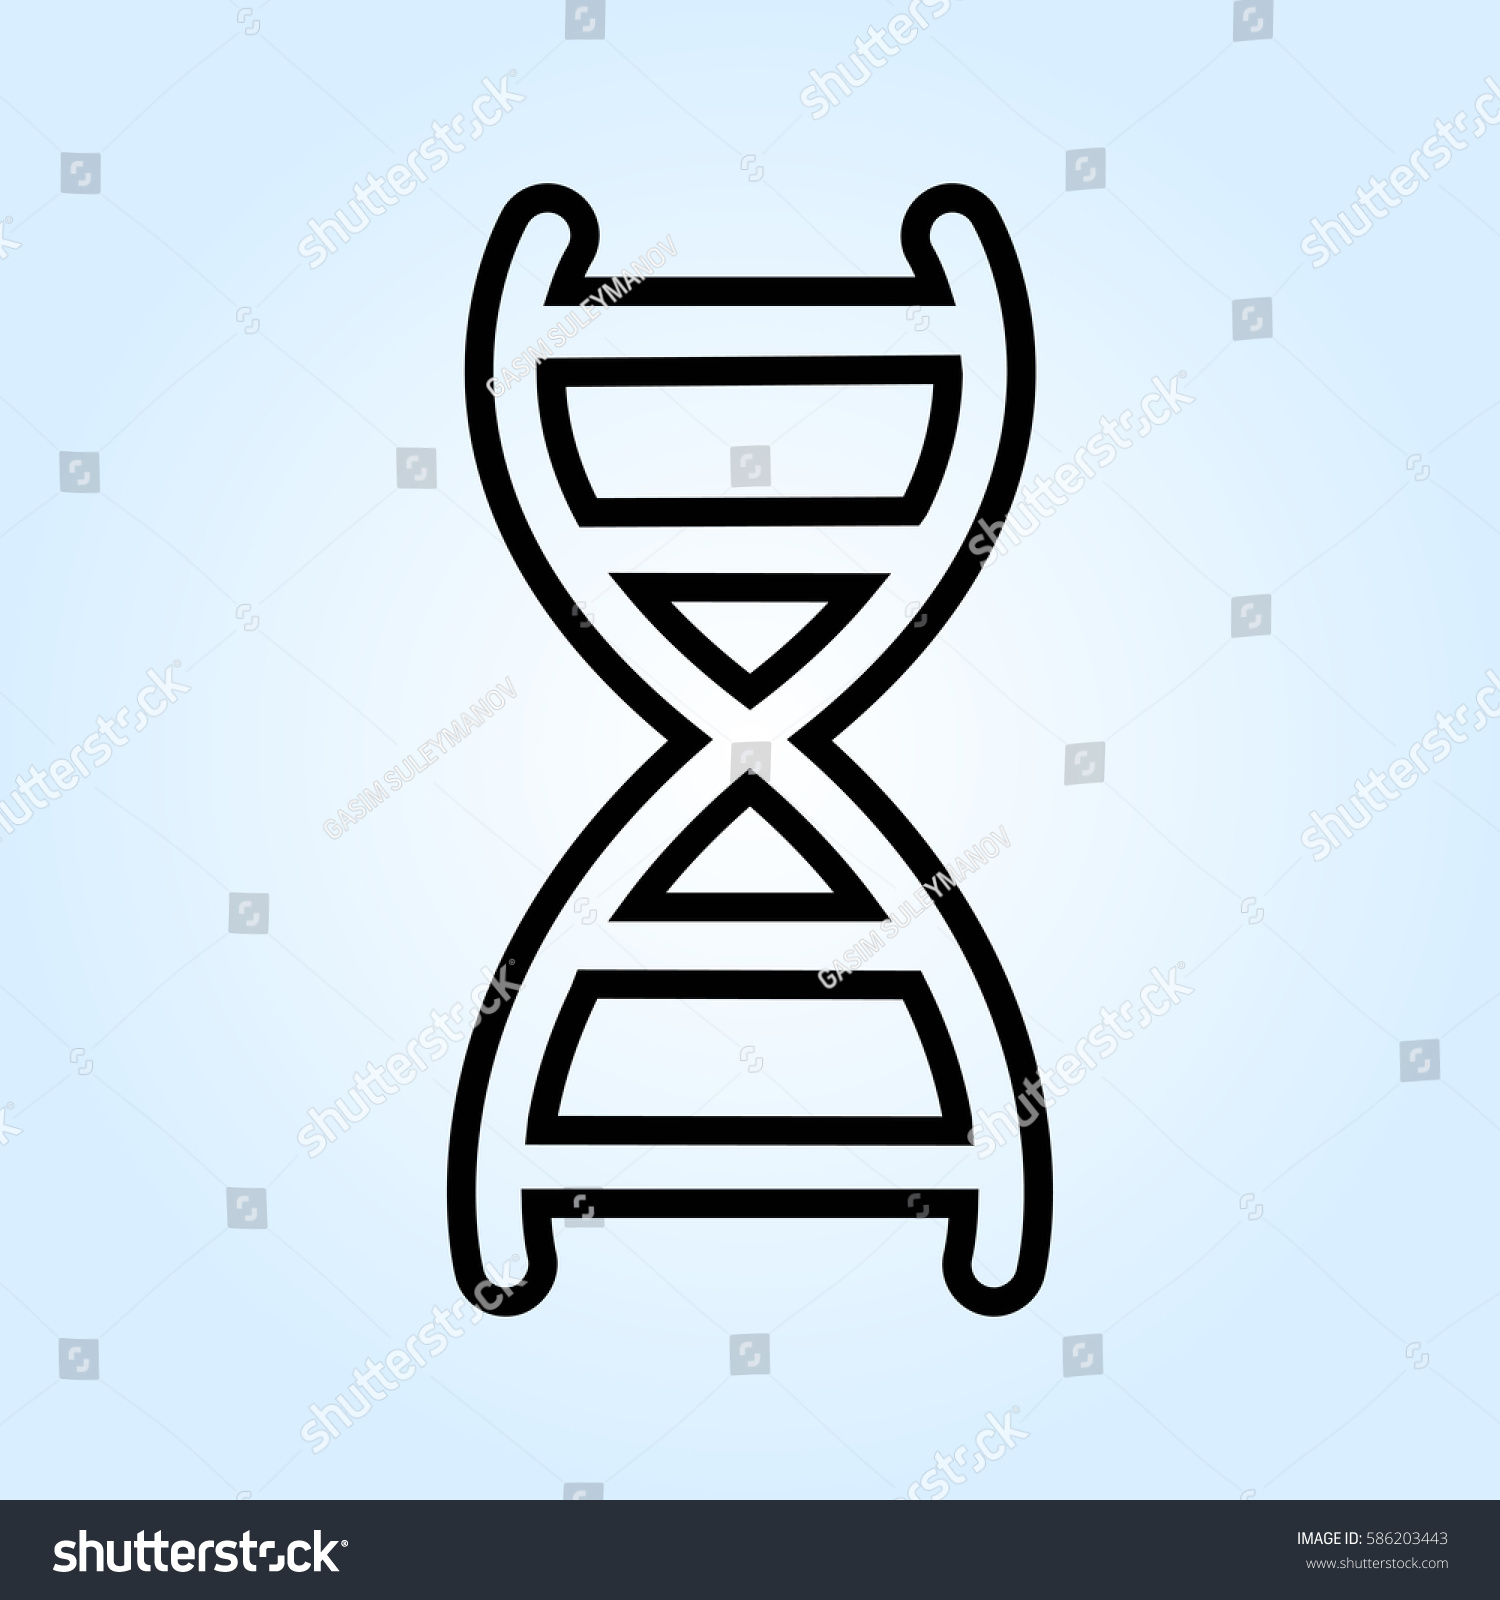 Gray Dna View Icon Isolated On Stock Vector 2018 586203443